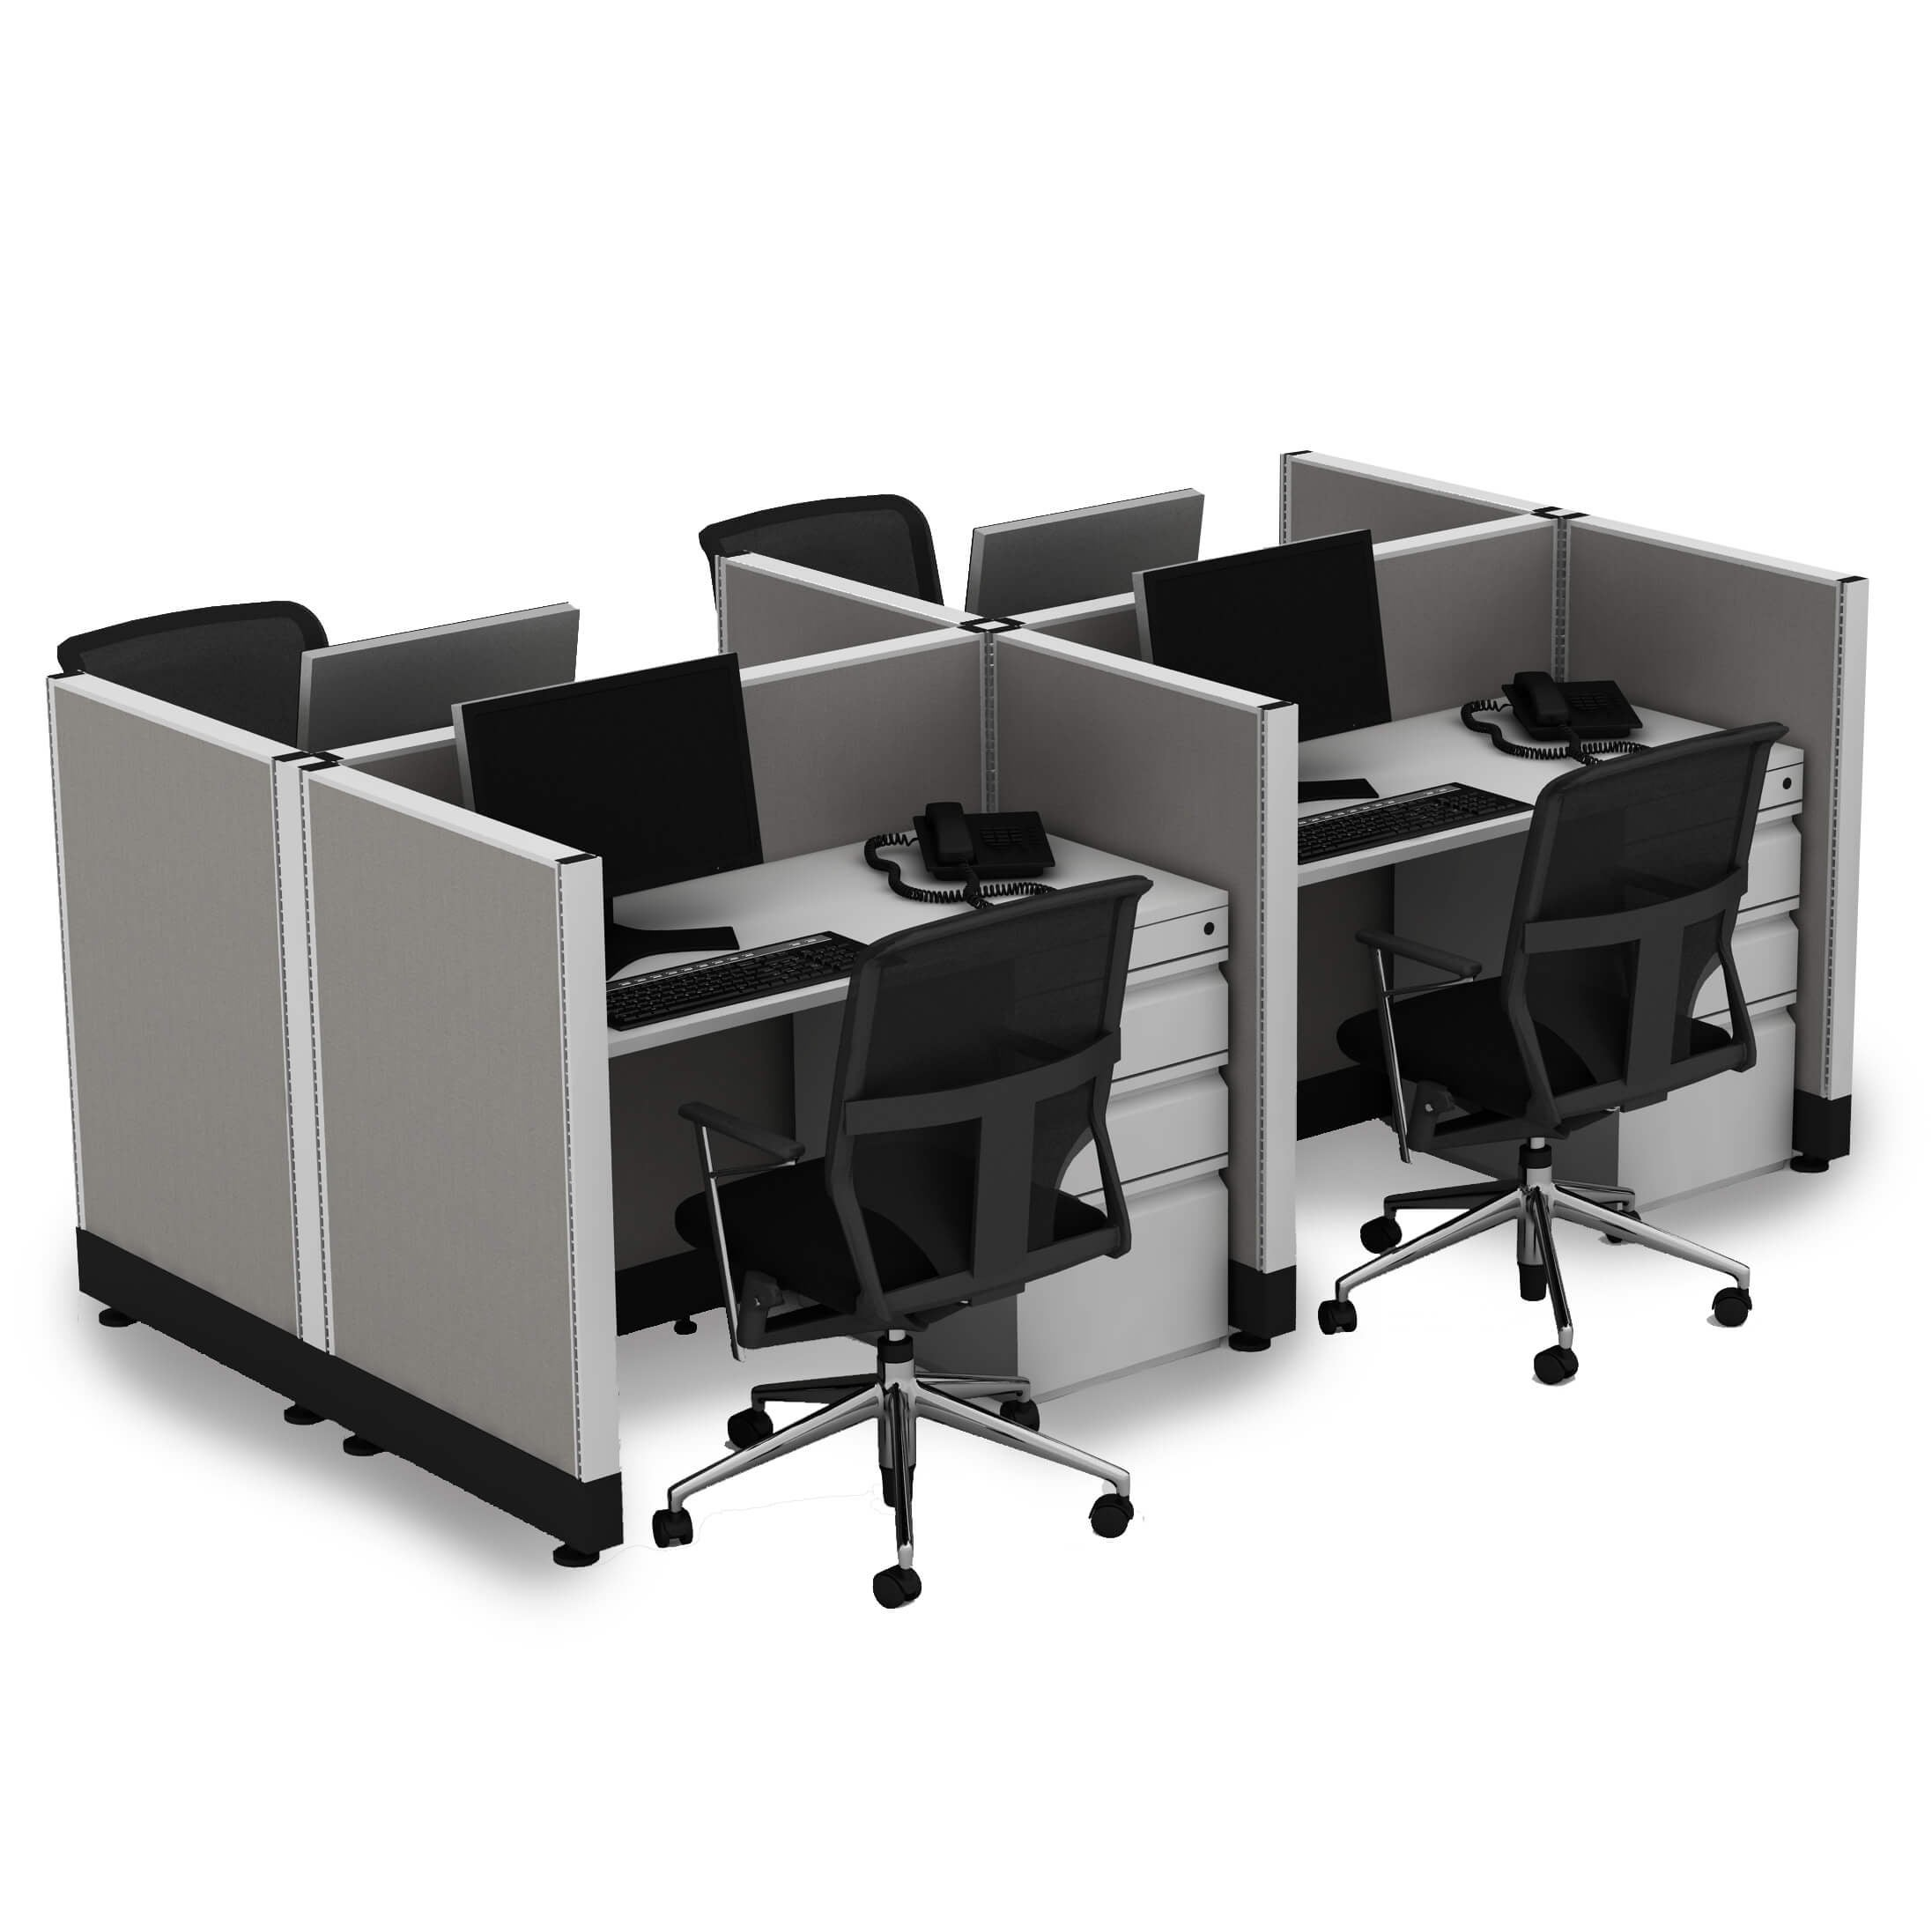 Small Office Cubicles 39H 4pack Cluster Unpowered (2x4 - White Desk Silver Paint - Assembly Required)